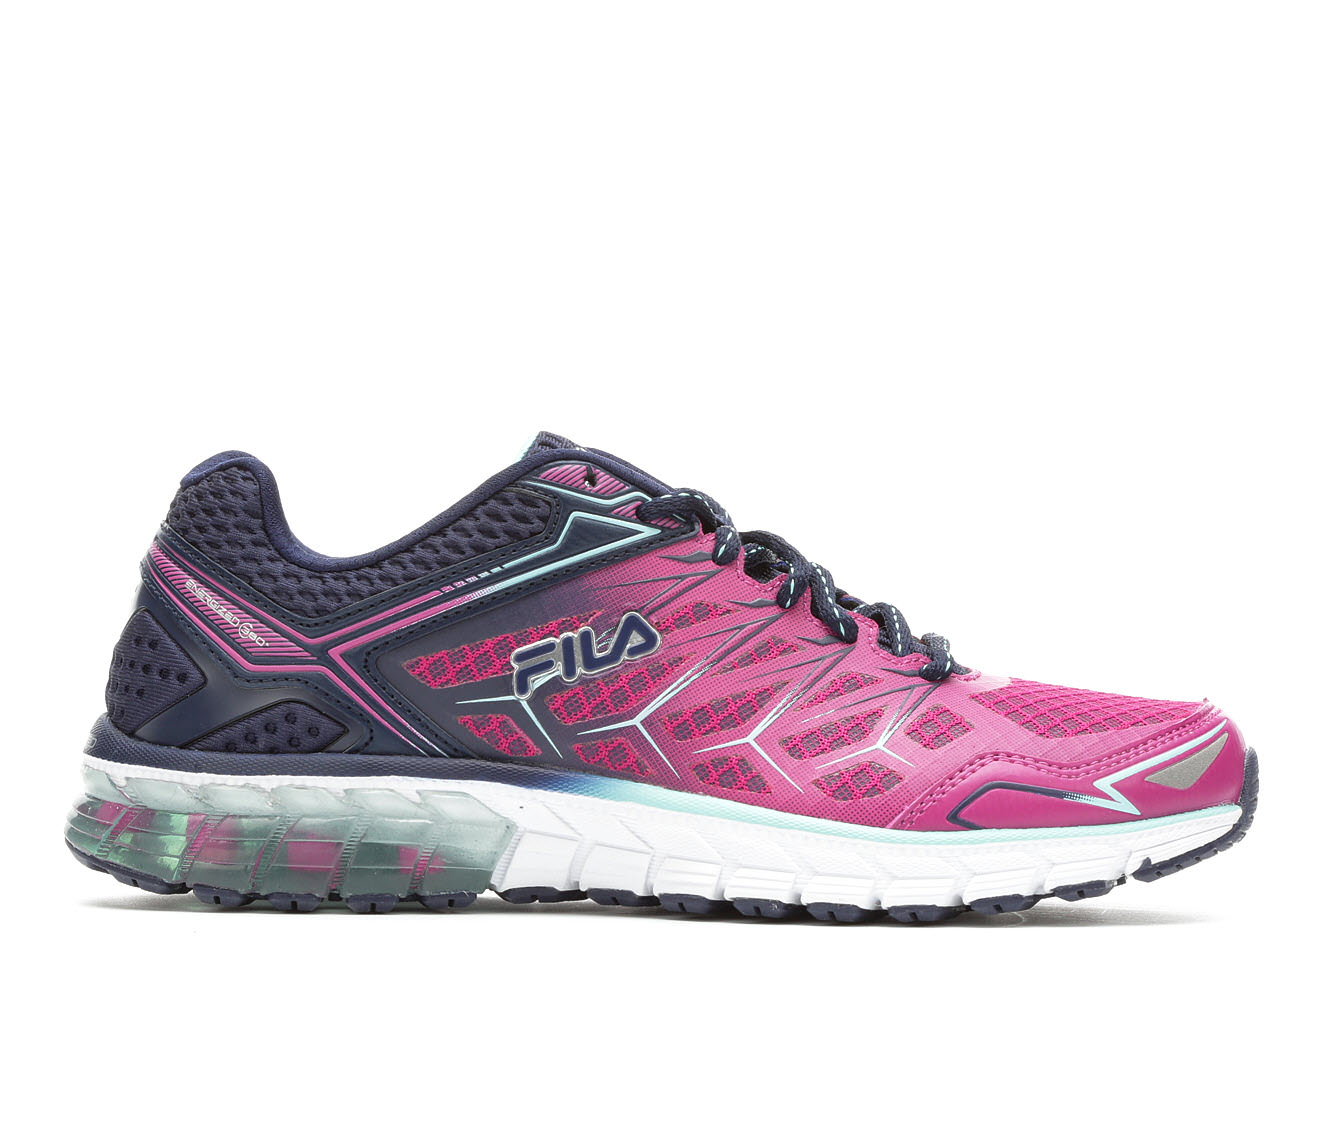 Women's Fila Ravenue 3 360 Running Shoes (Pink - Size 7) 1653576